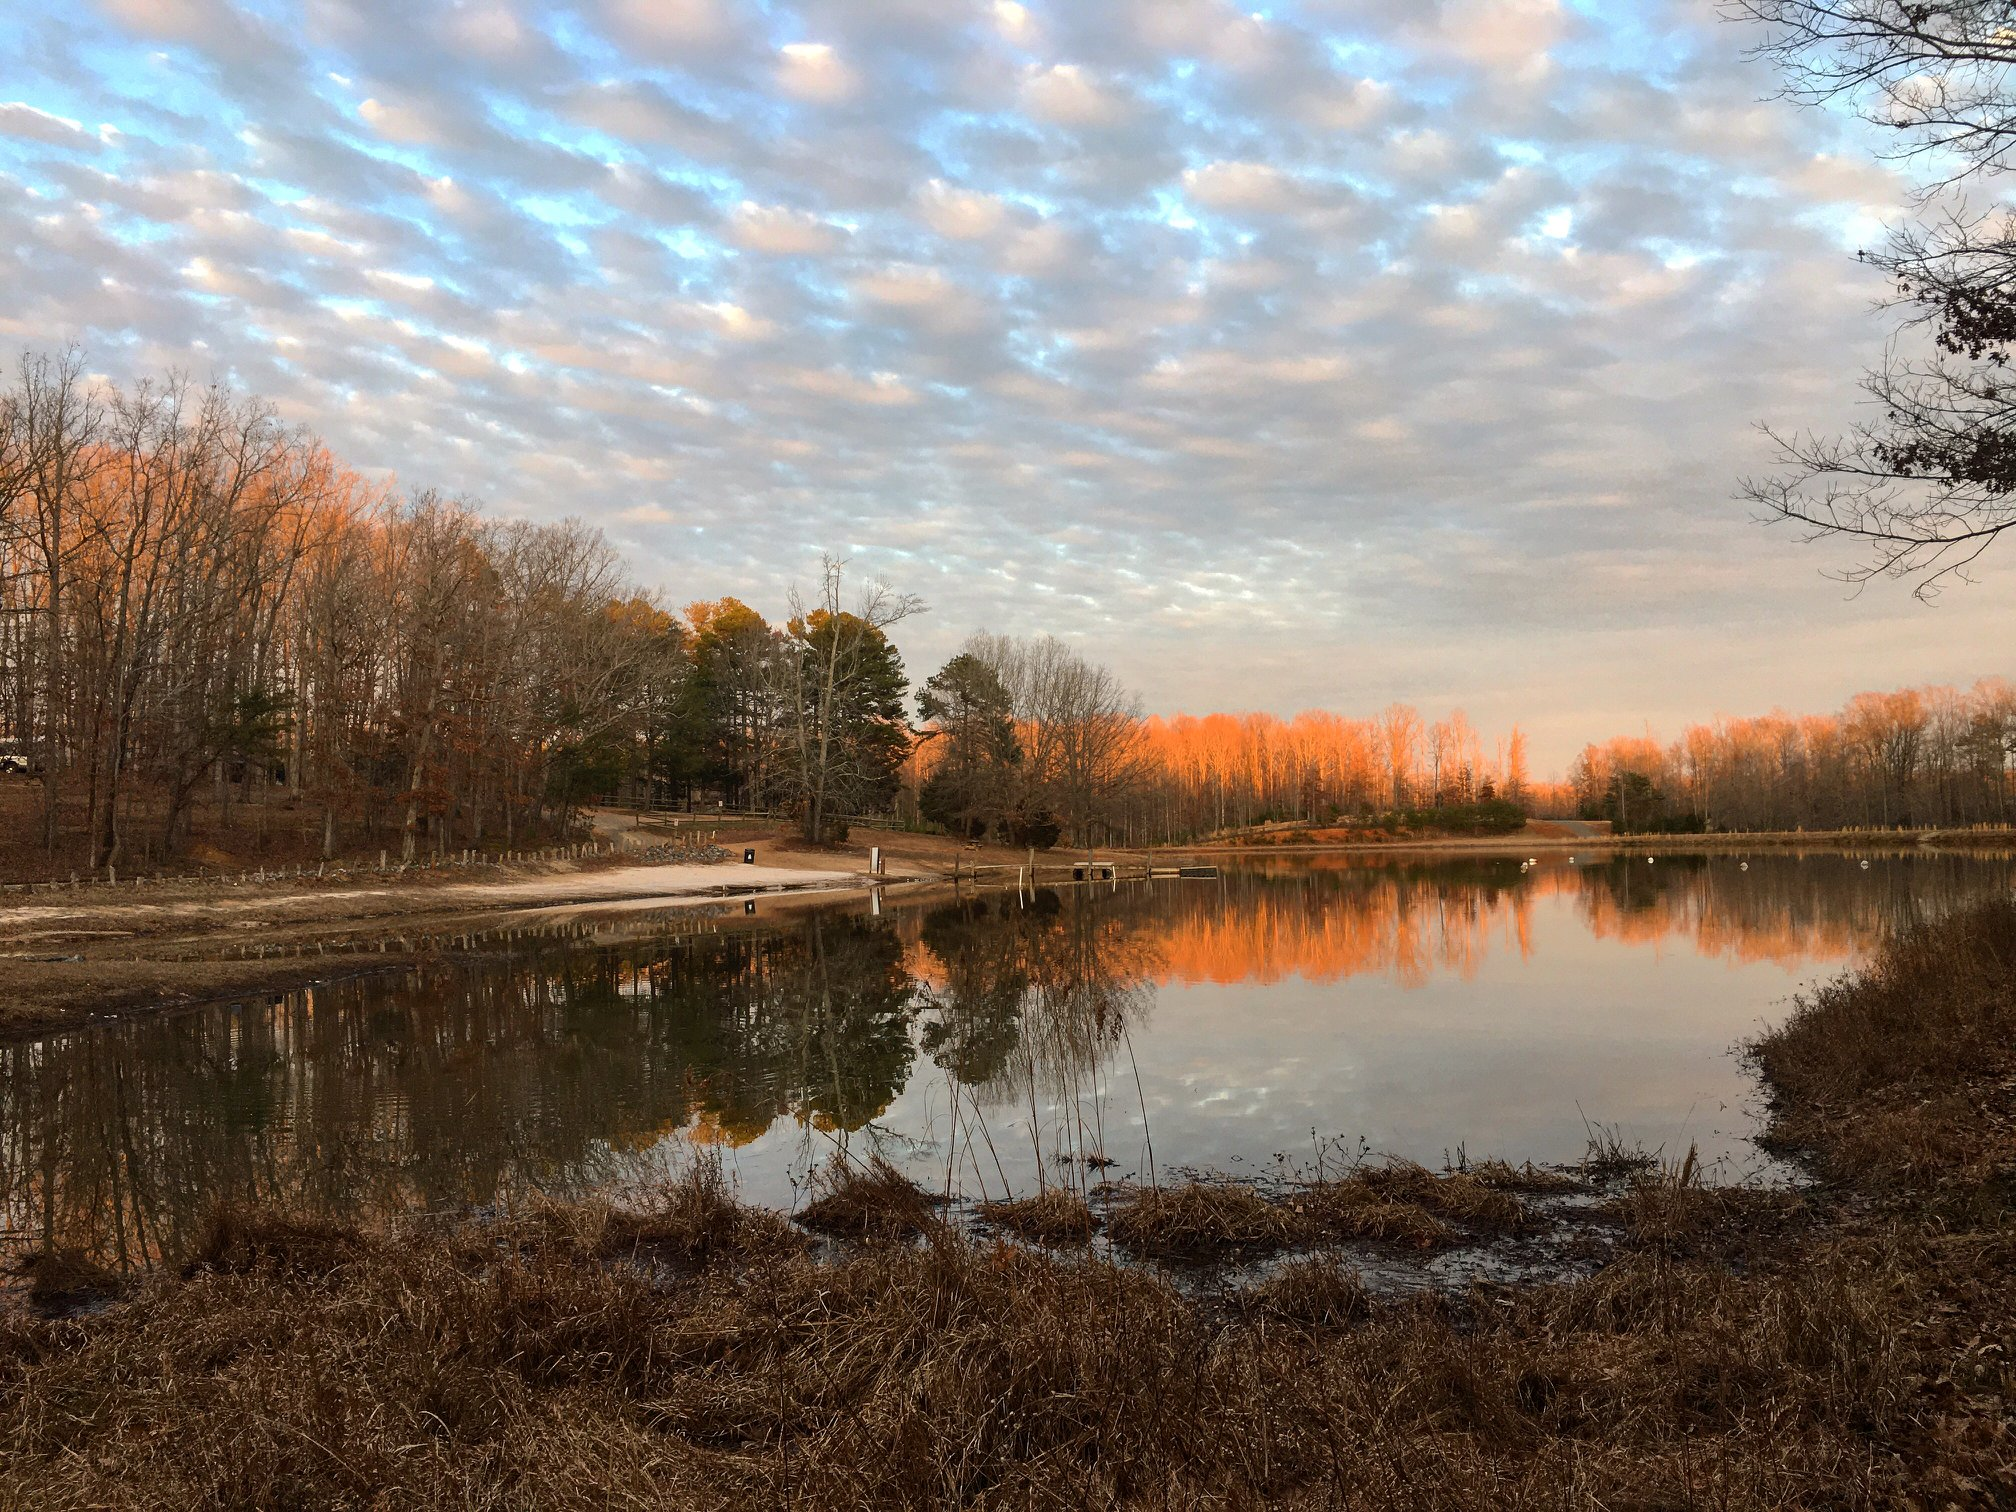 Our private, 25-acre lake is great for canoeing, swimming, or fishing!